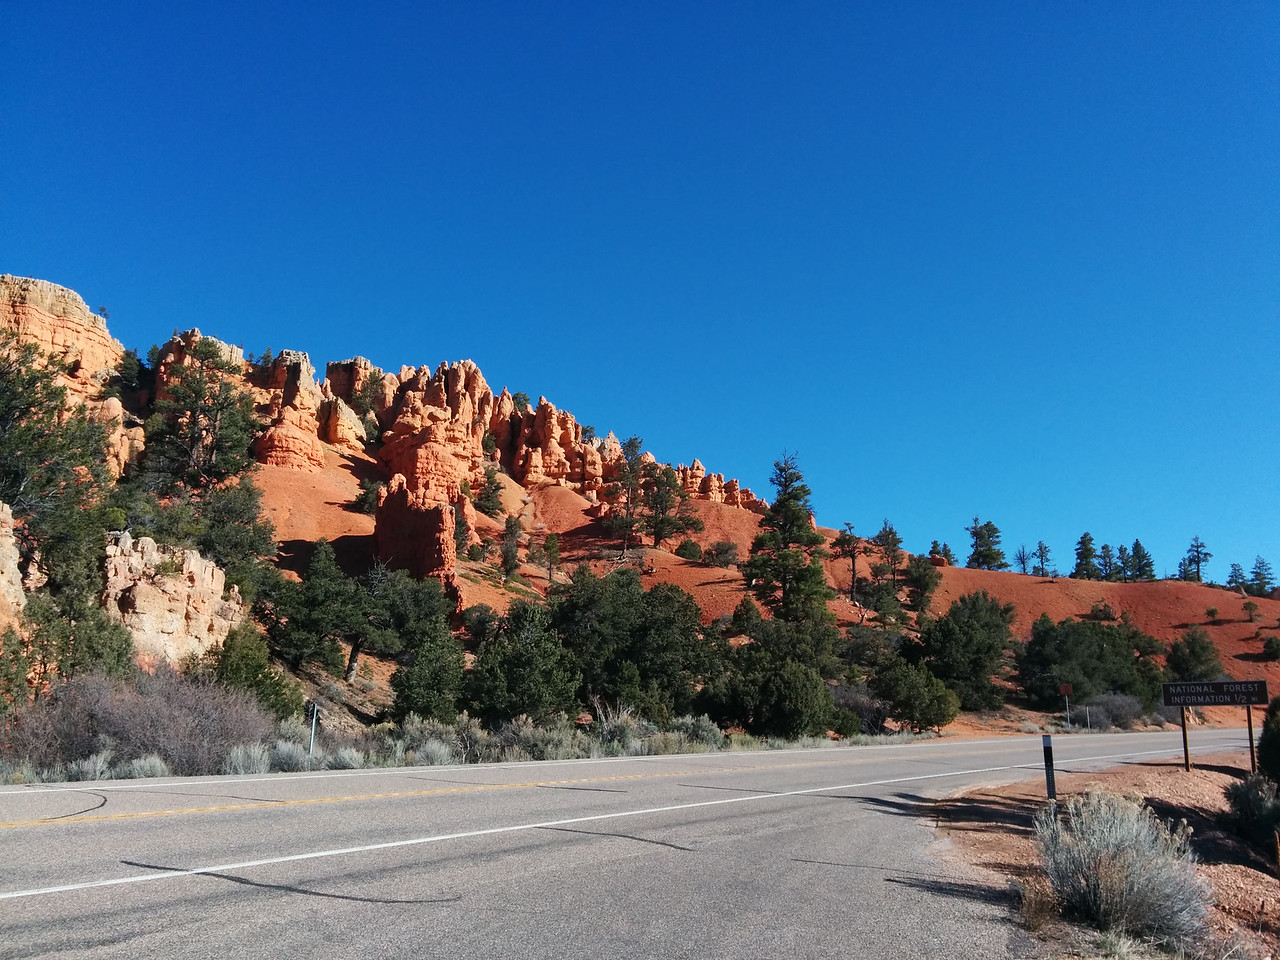 Driving through Red Canyon on the way to Bryce Canyon National Park.